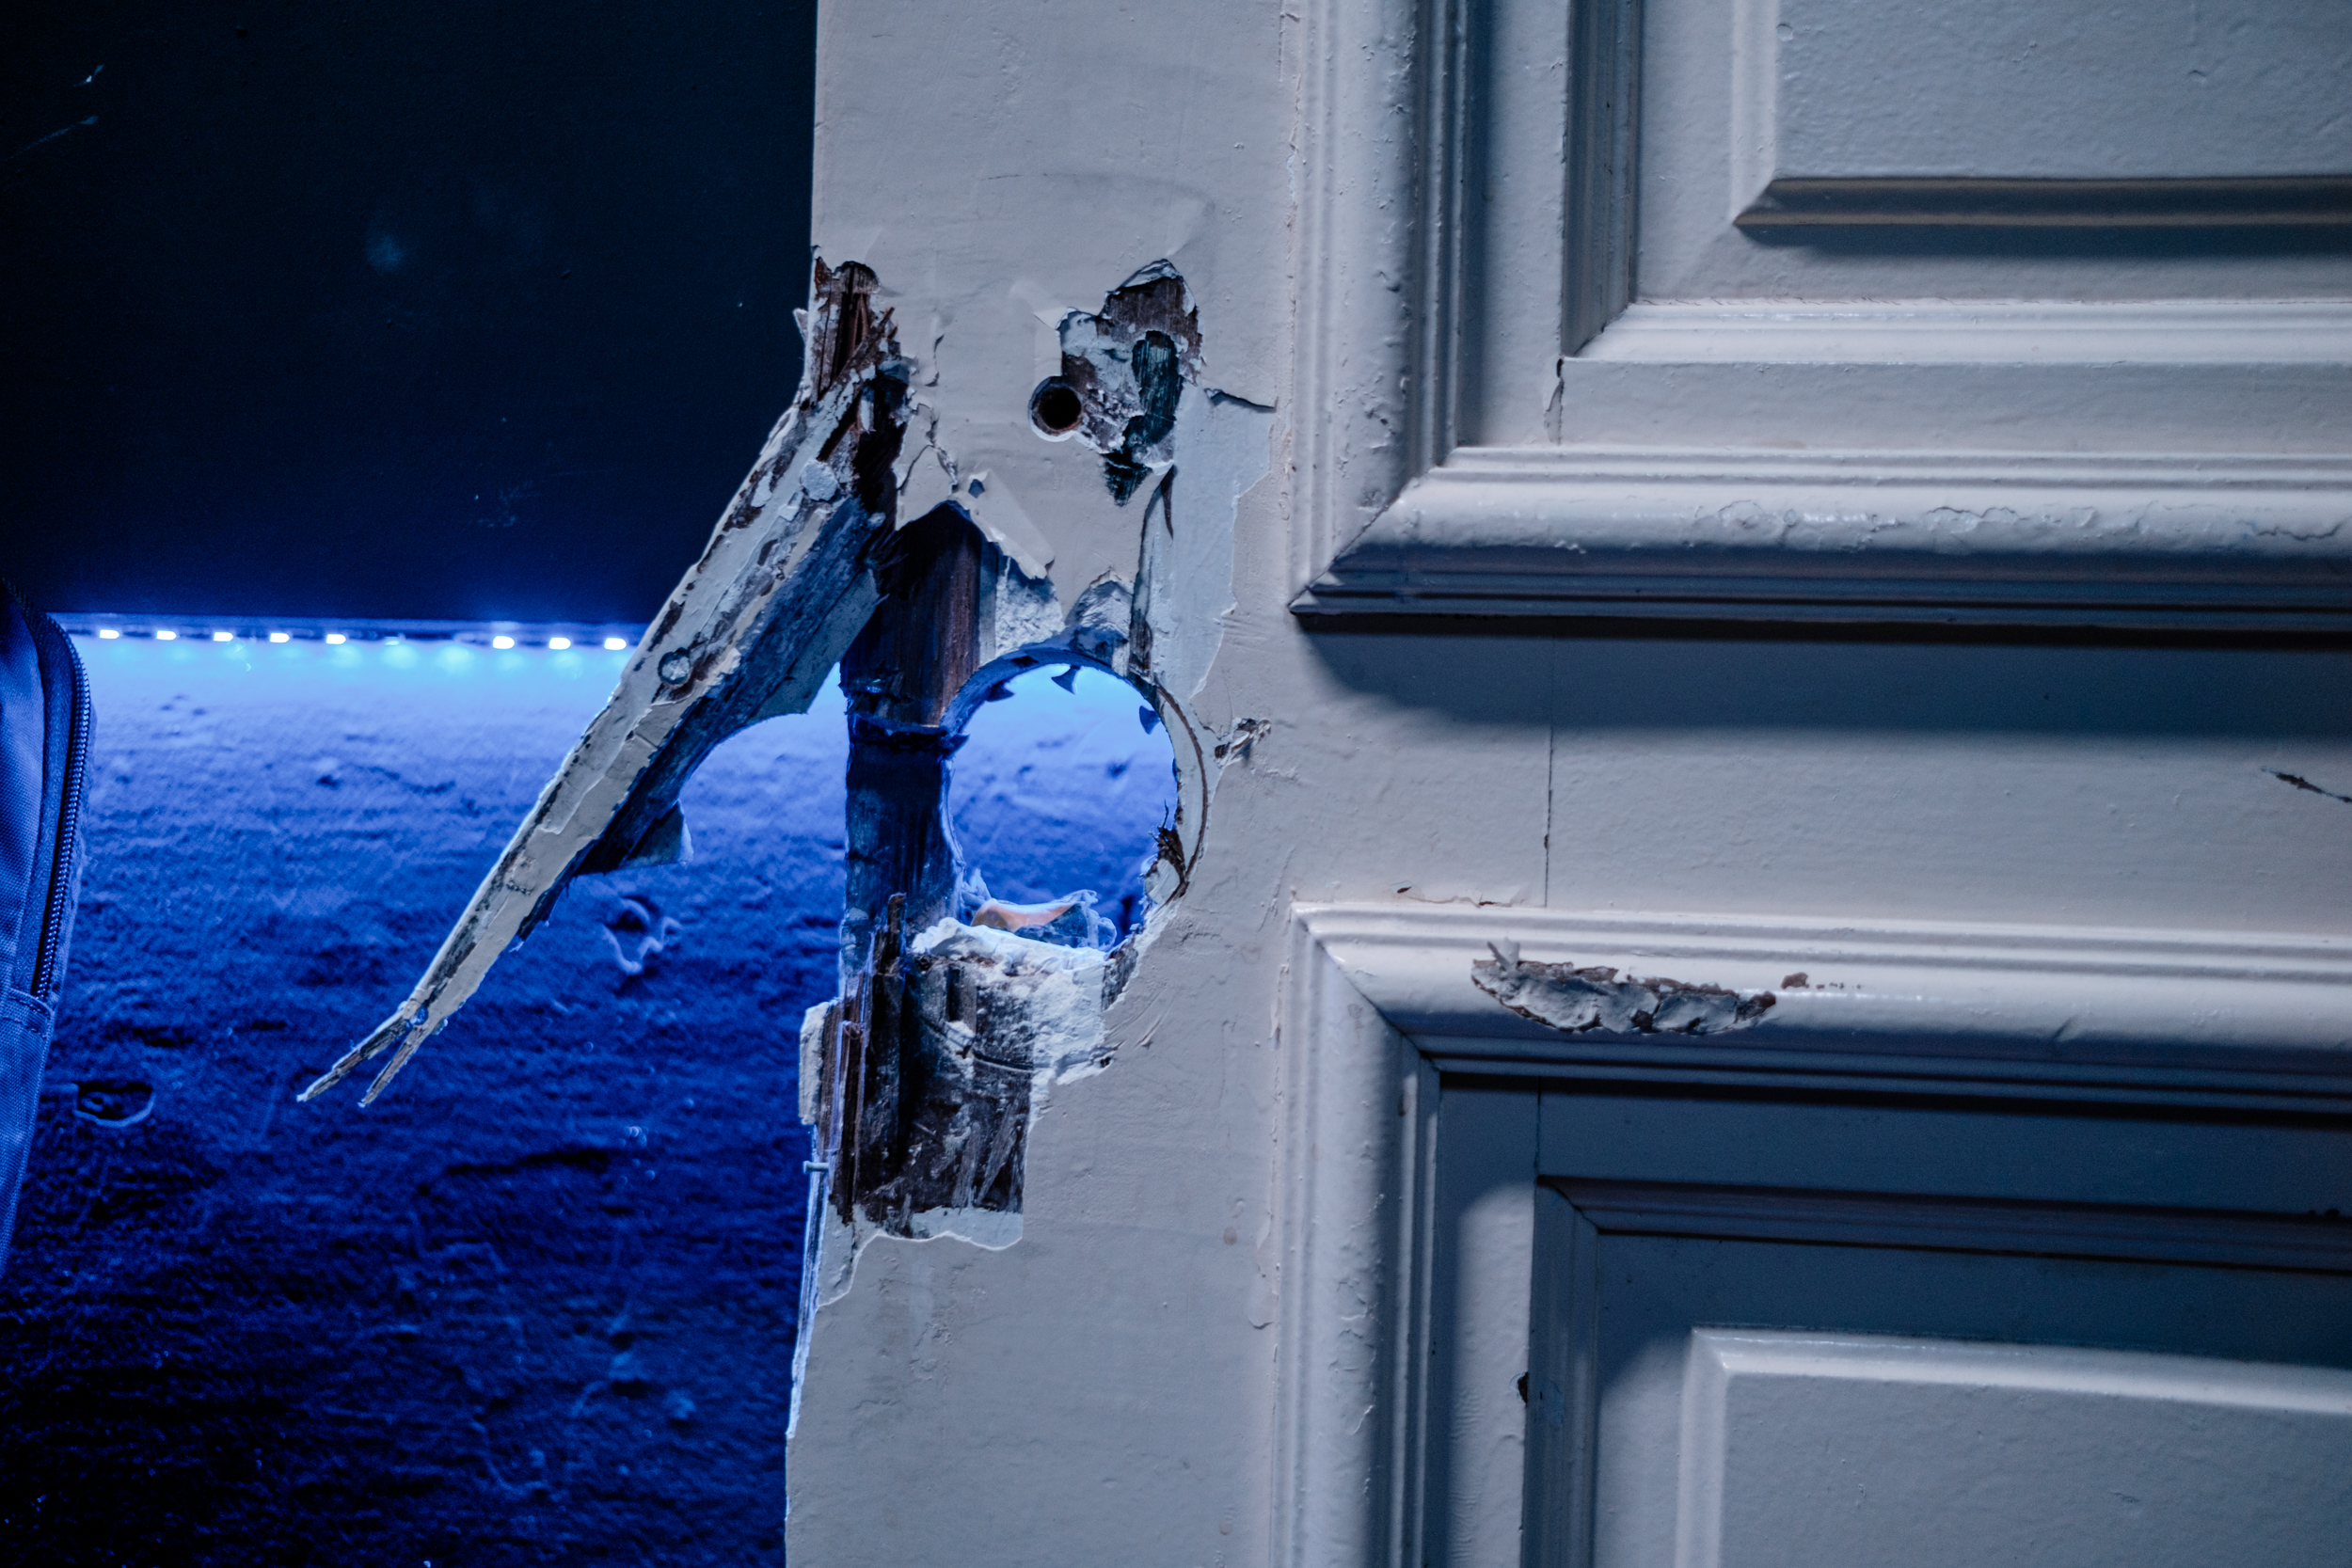 Image of the busted door missing a knob.